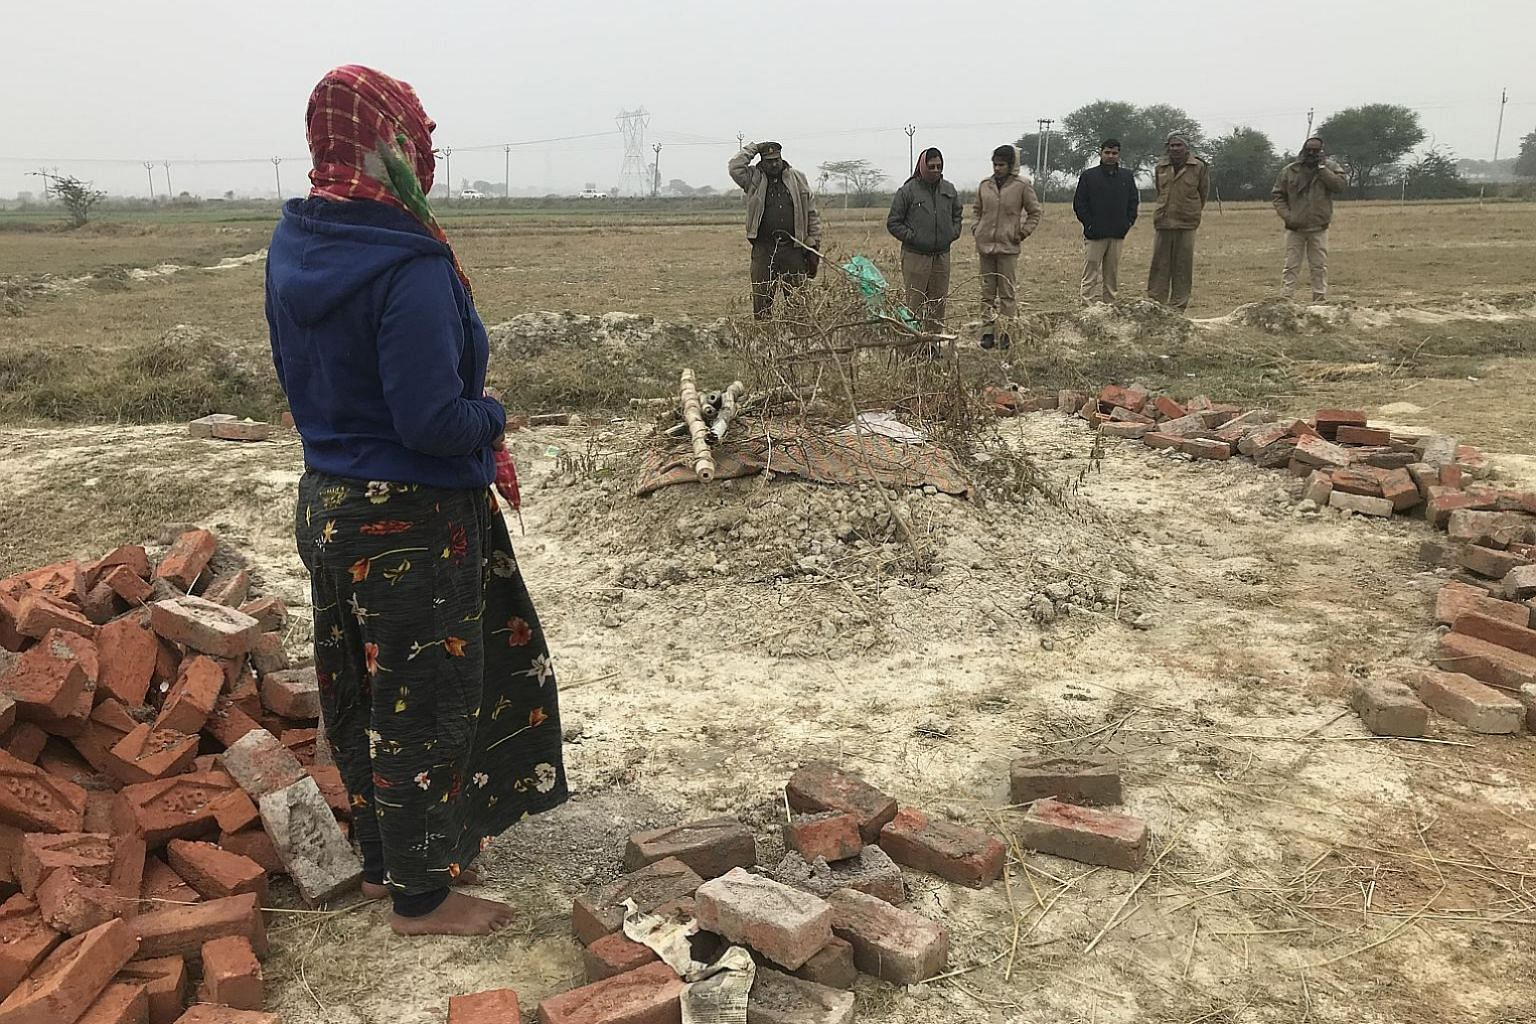 A woman at the grave of her sister who was raped and later set on fire, allegedly by two of her accused rapists, in a village in Unnao. Accompanying her on the visit to the grave were police officials assigned to protect the family. She said her sist